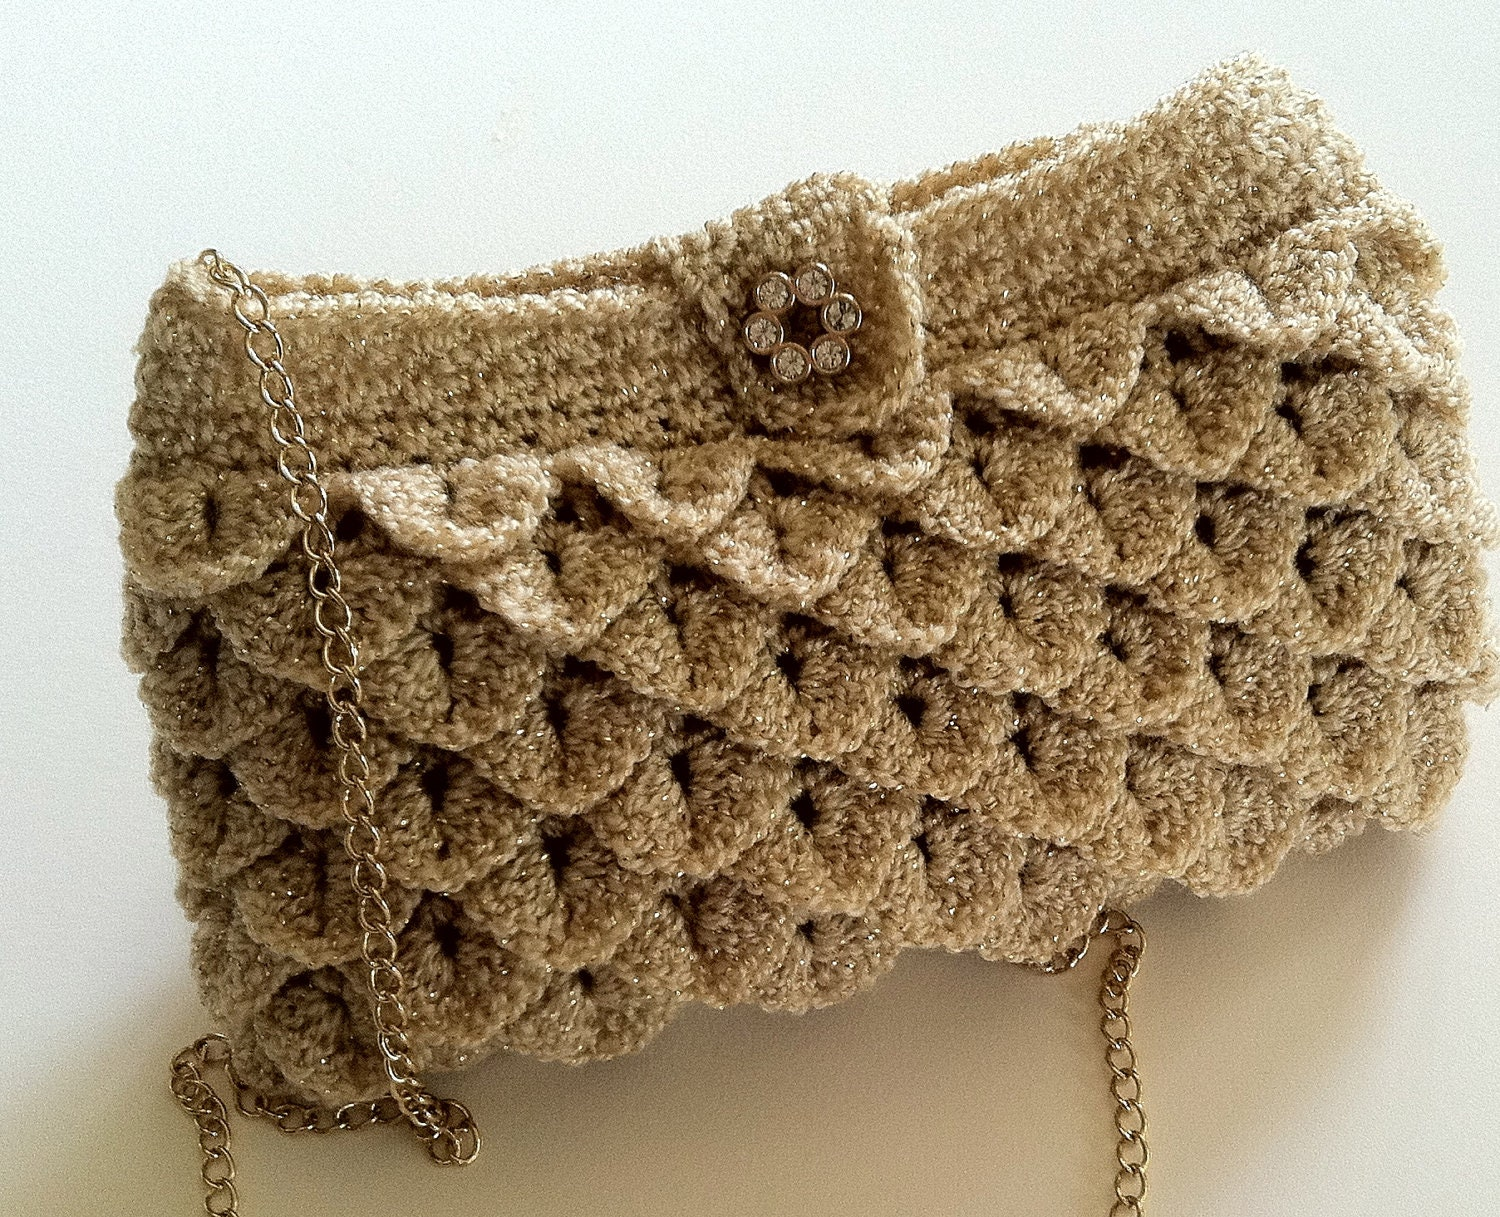 Crochet Clutch Bag Pattern : Crochet Pattern for Clutch Purse Evening Bag by ThePatternParadise